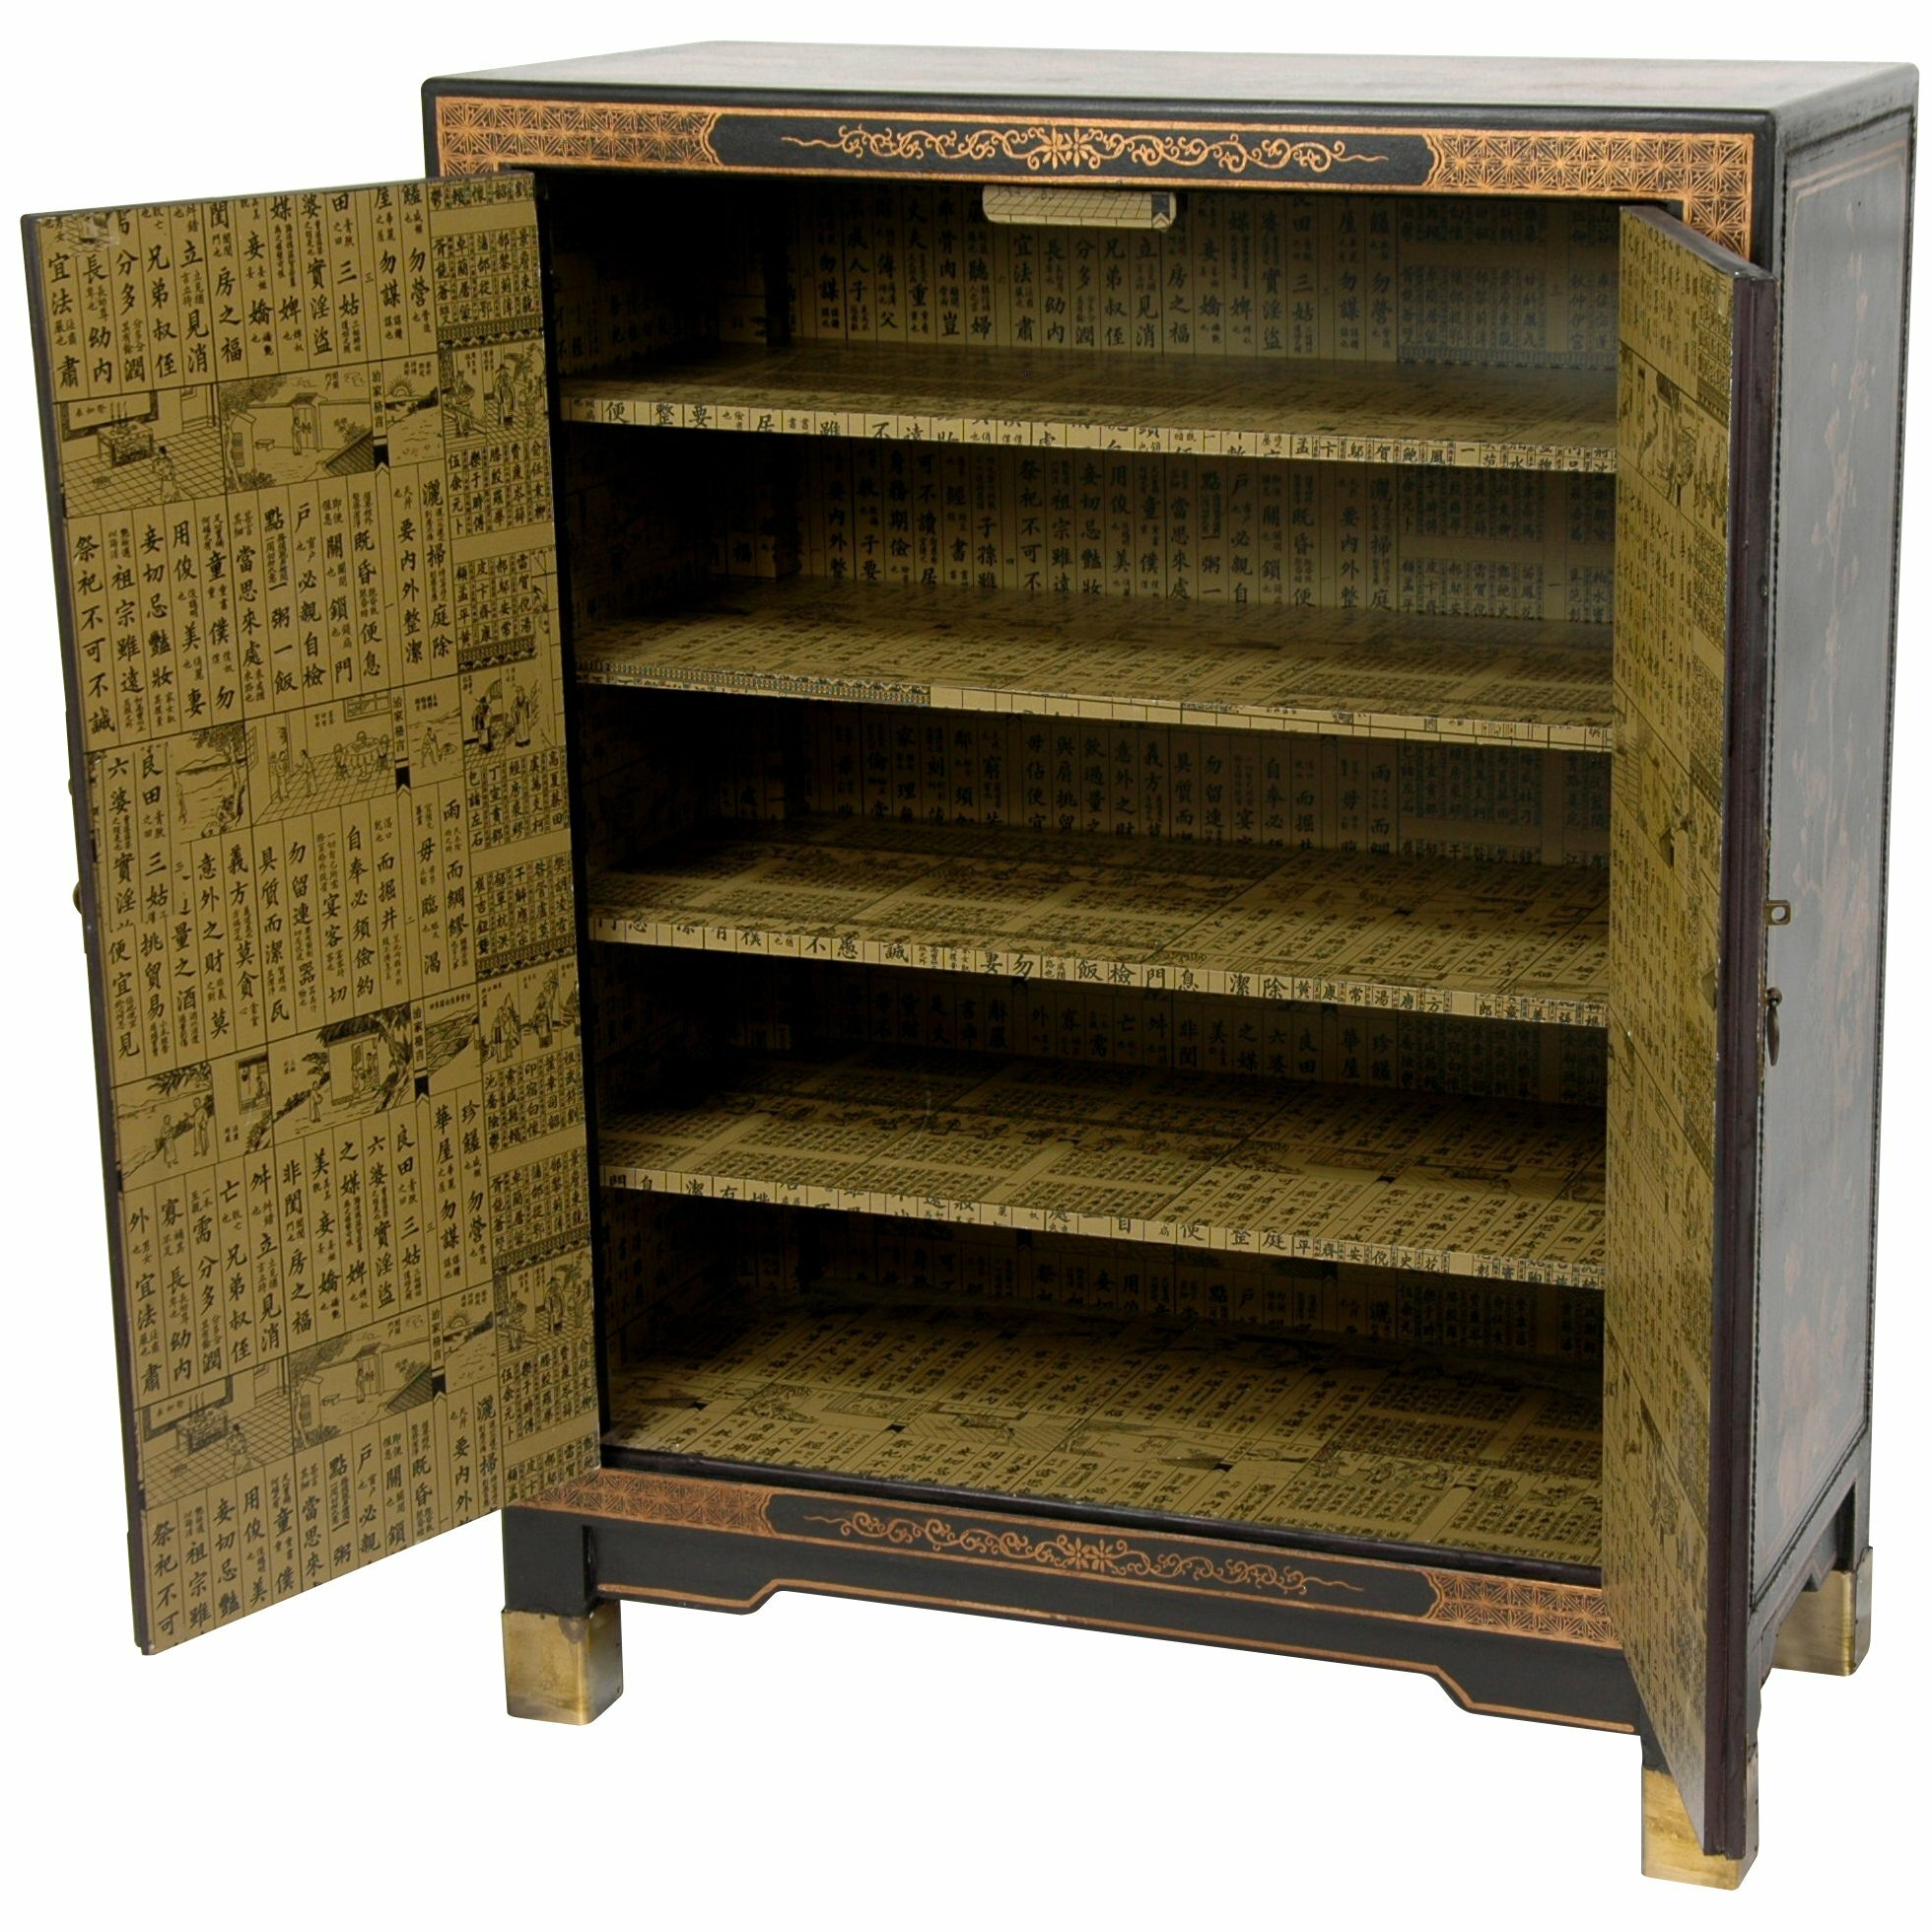 Oriental furniture nestling birds cabinet reviews wayfair for Oriental furniture